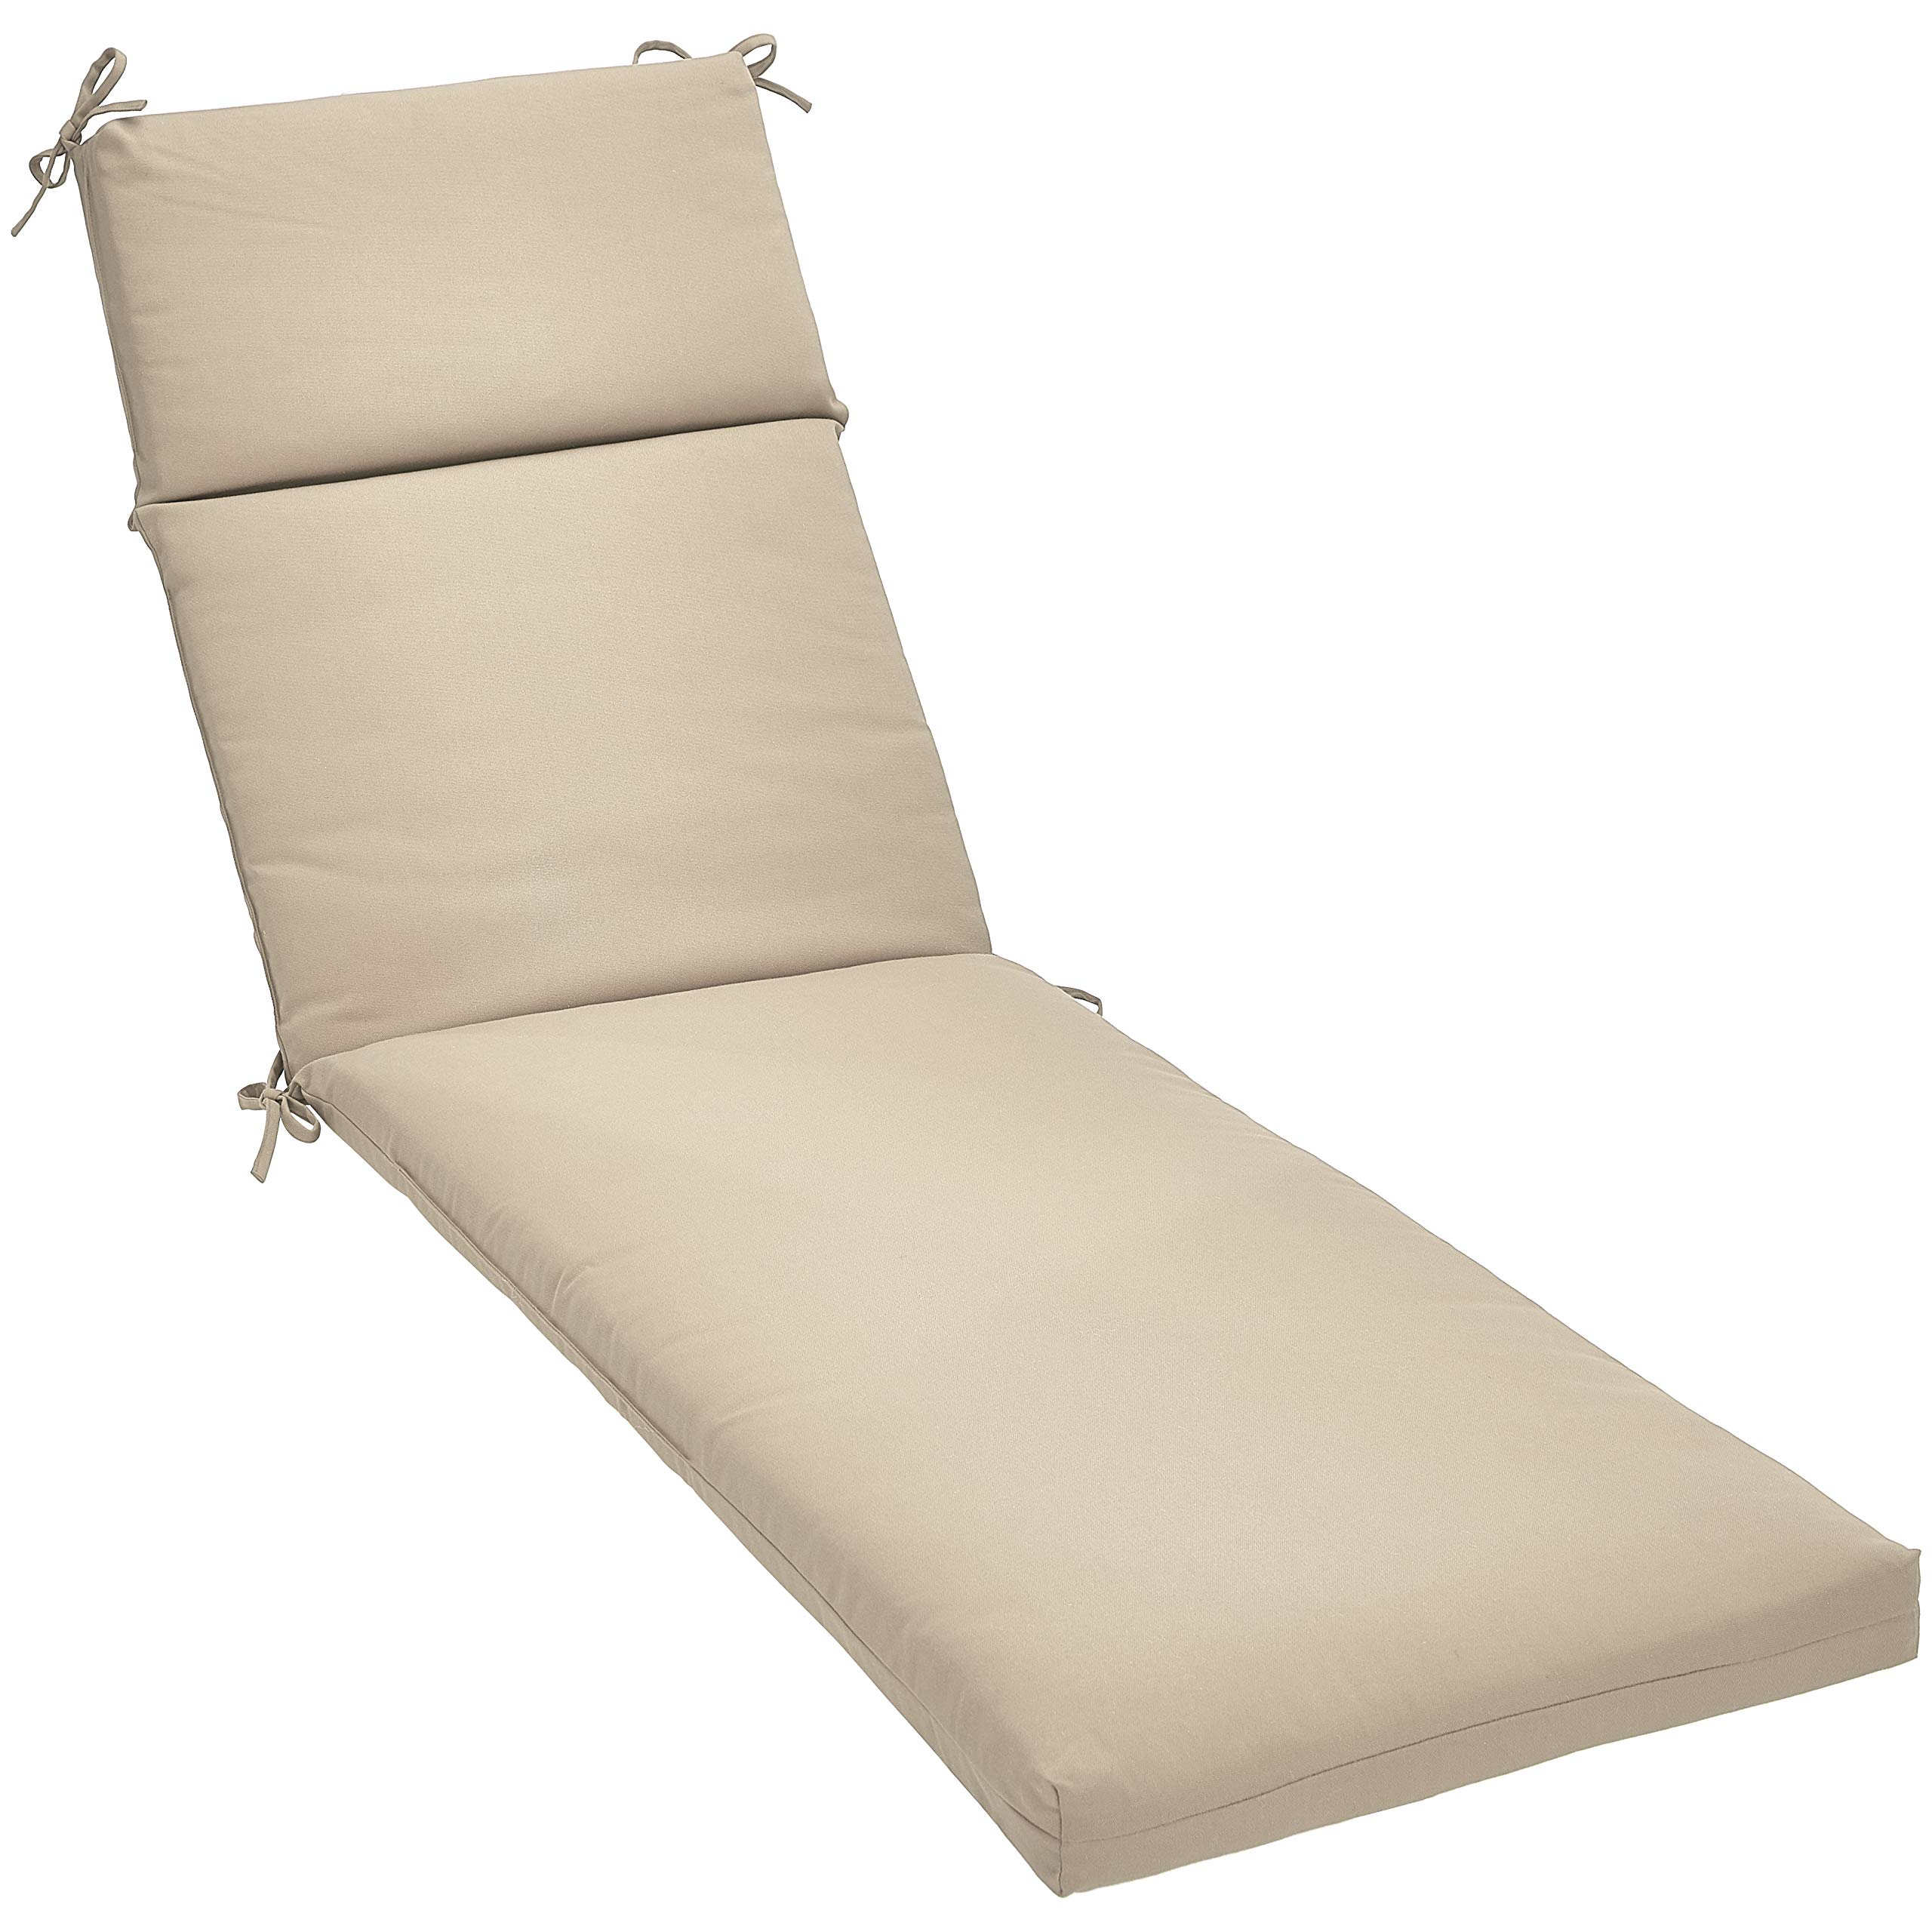 AmazonBasics Lounger Patio Cushion- Poly Batting - Tan